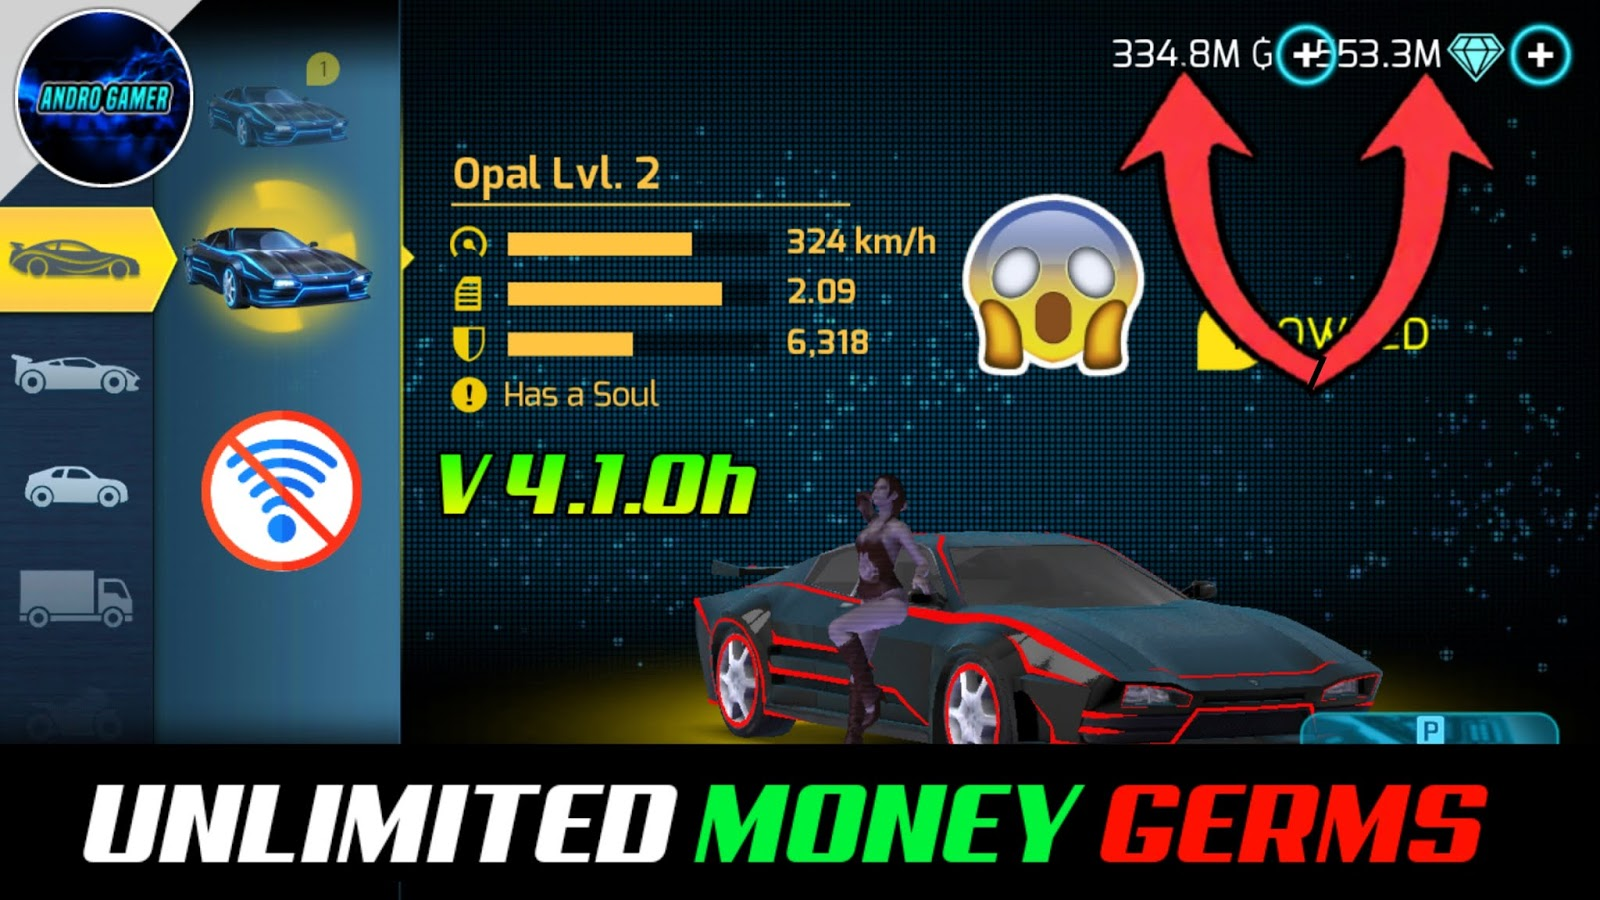 gangstar vegas hack apk unlimited money